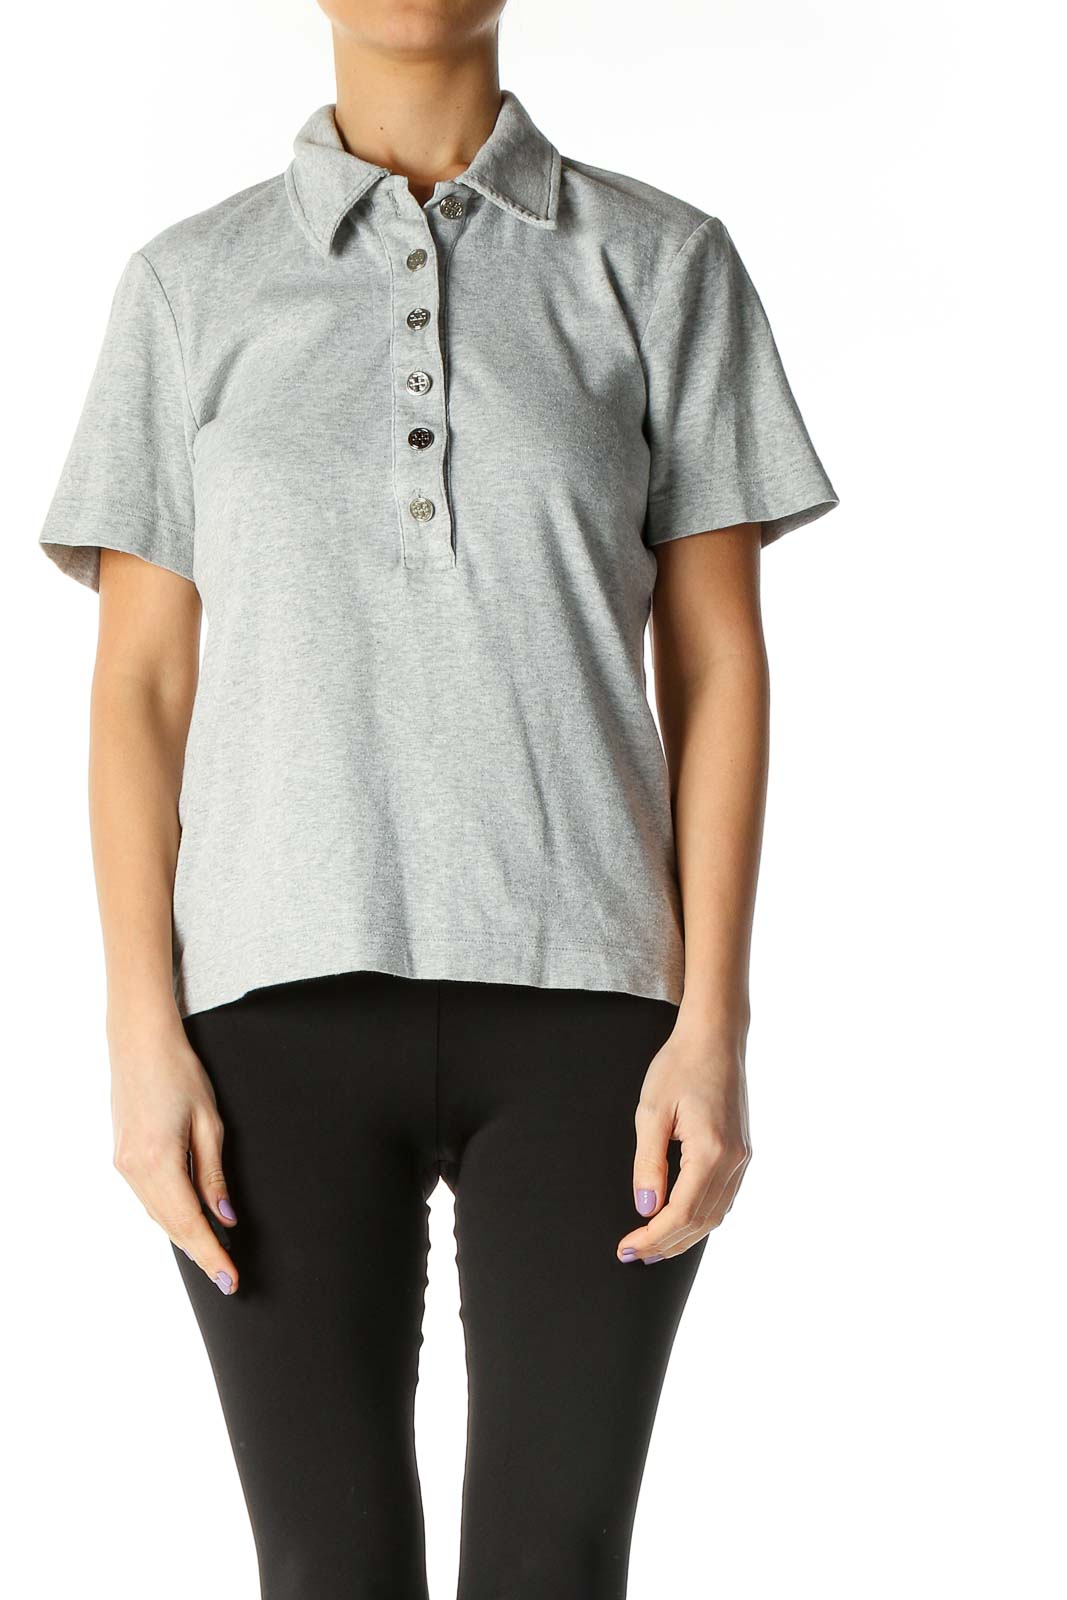 Gray Solid Casual Polo Shirt Front